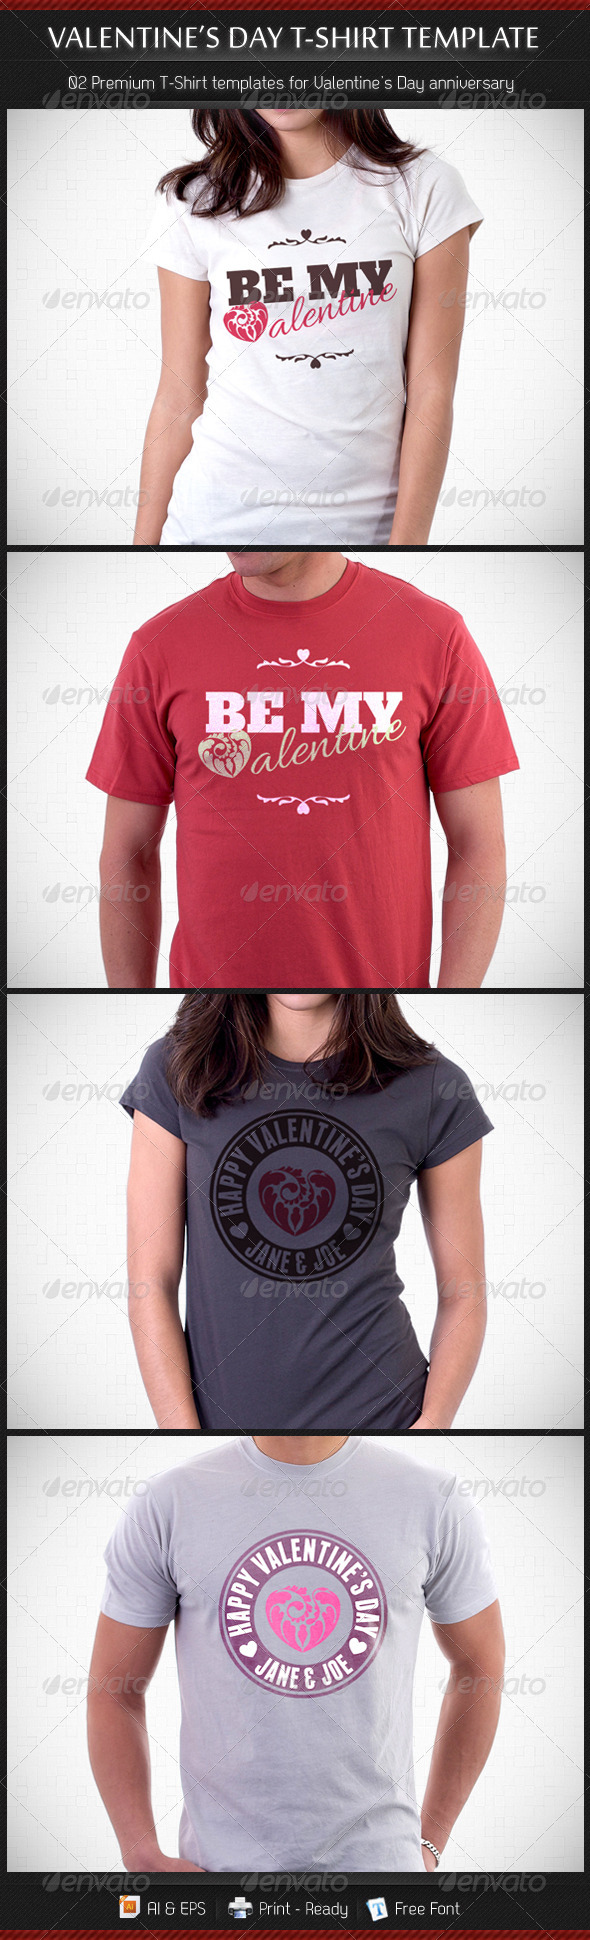 Valentine's Day T-shirt Template  - Events T-Shirts